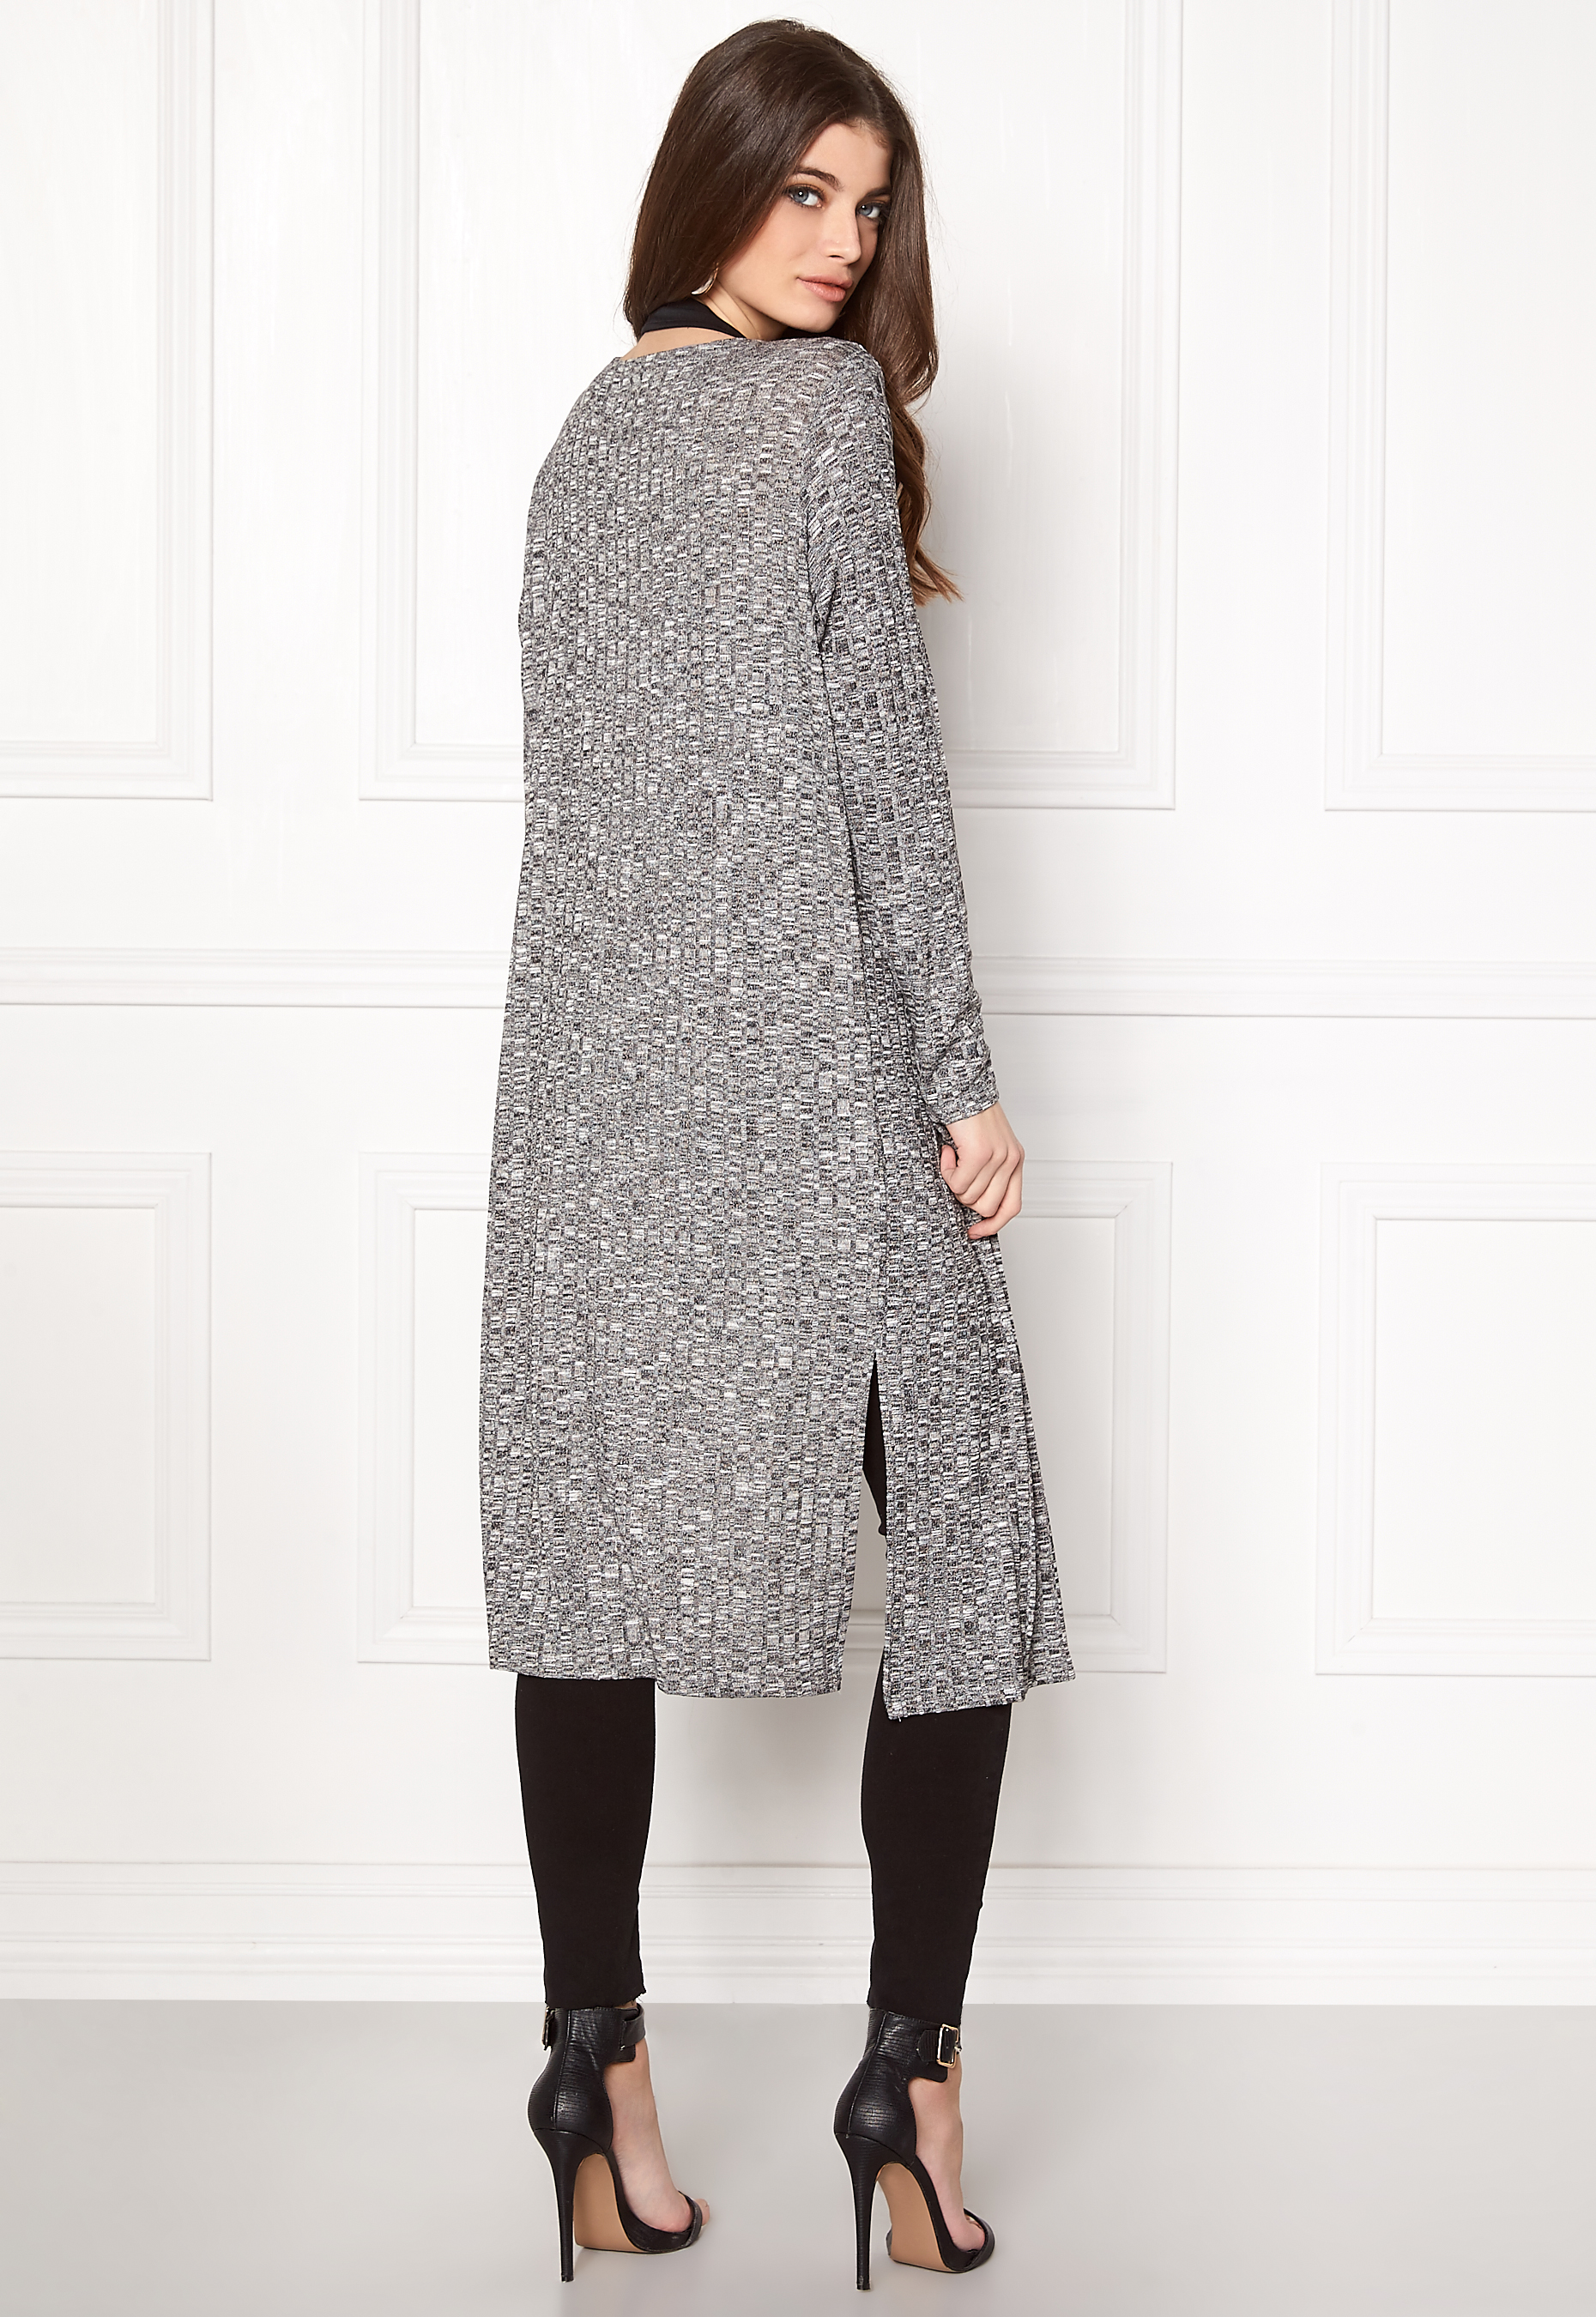 Vero Moda Knitting Yarns : Vero moda nille ls long open knit black beauty bubbleroom